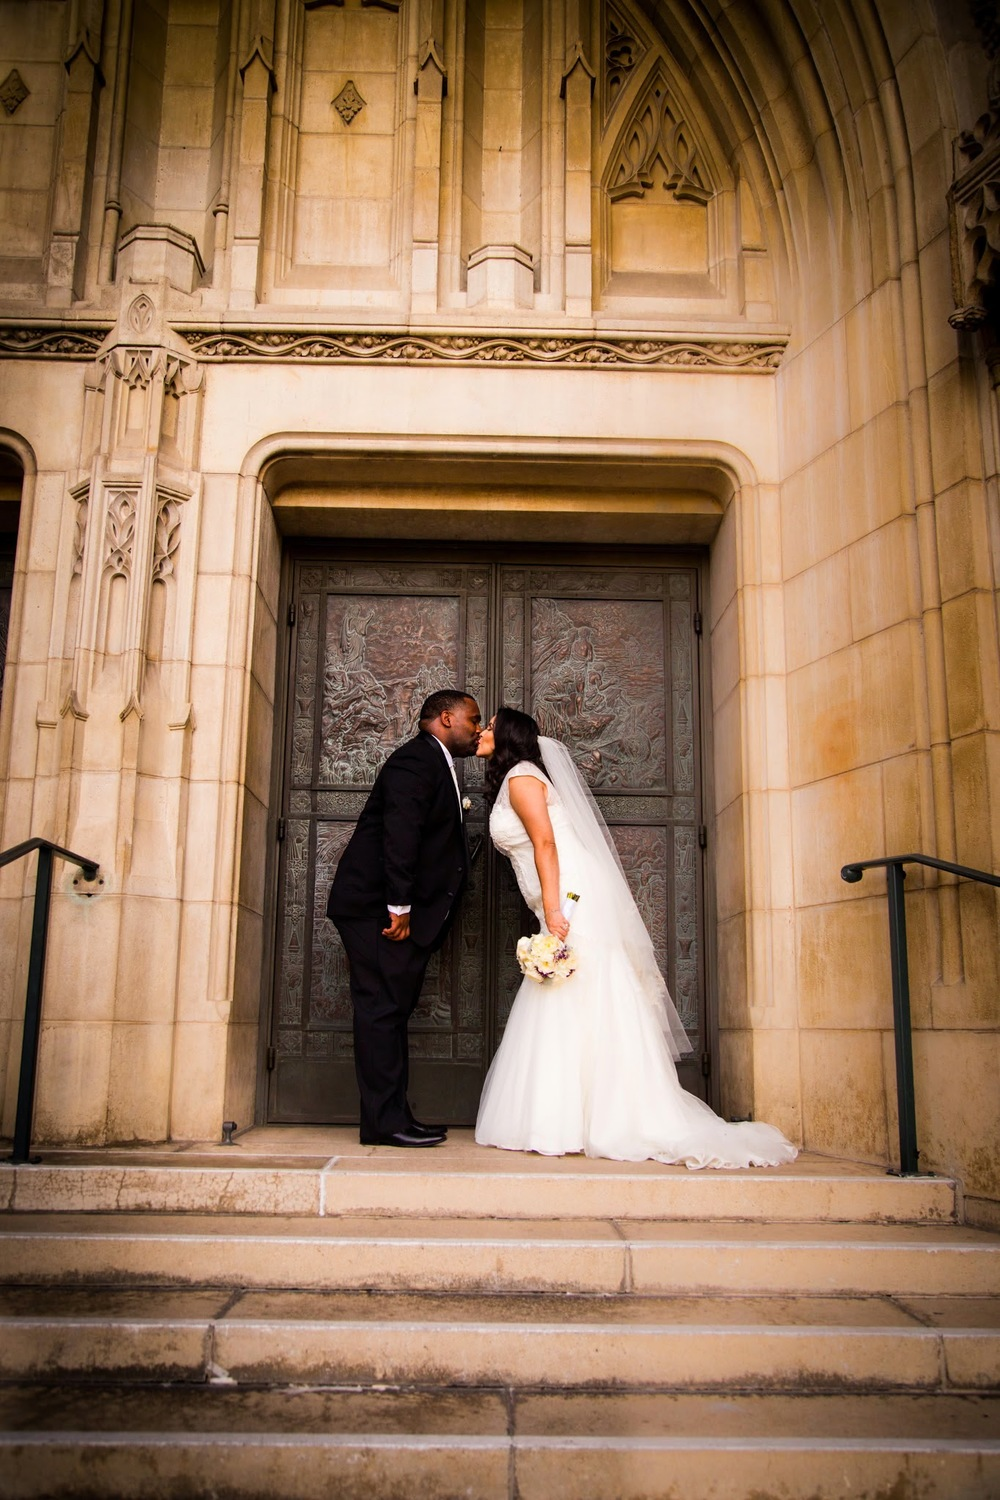 Professional Wedding photography, San diego, Los Angeles, Orange County